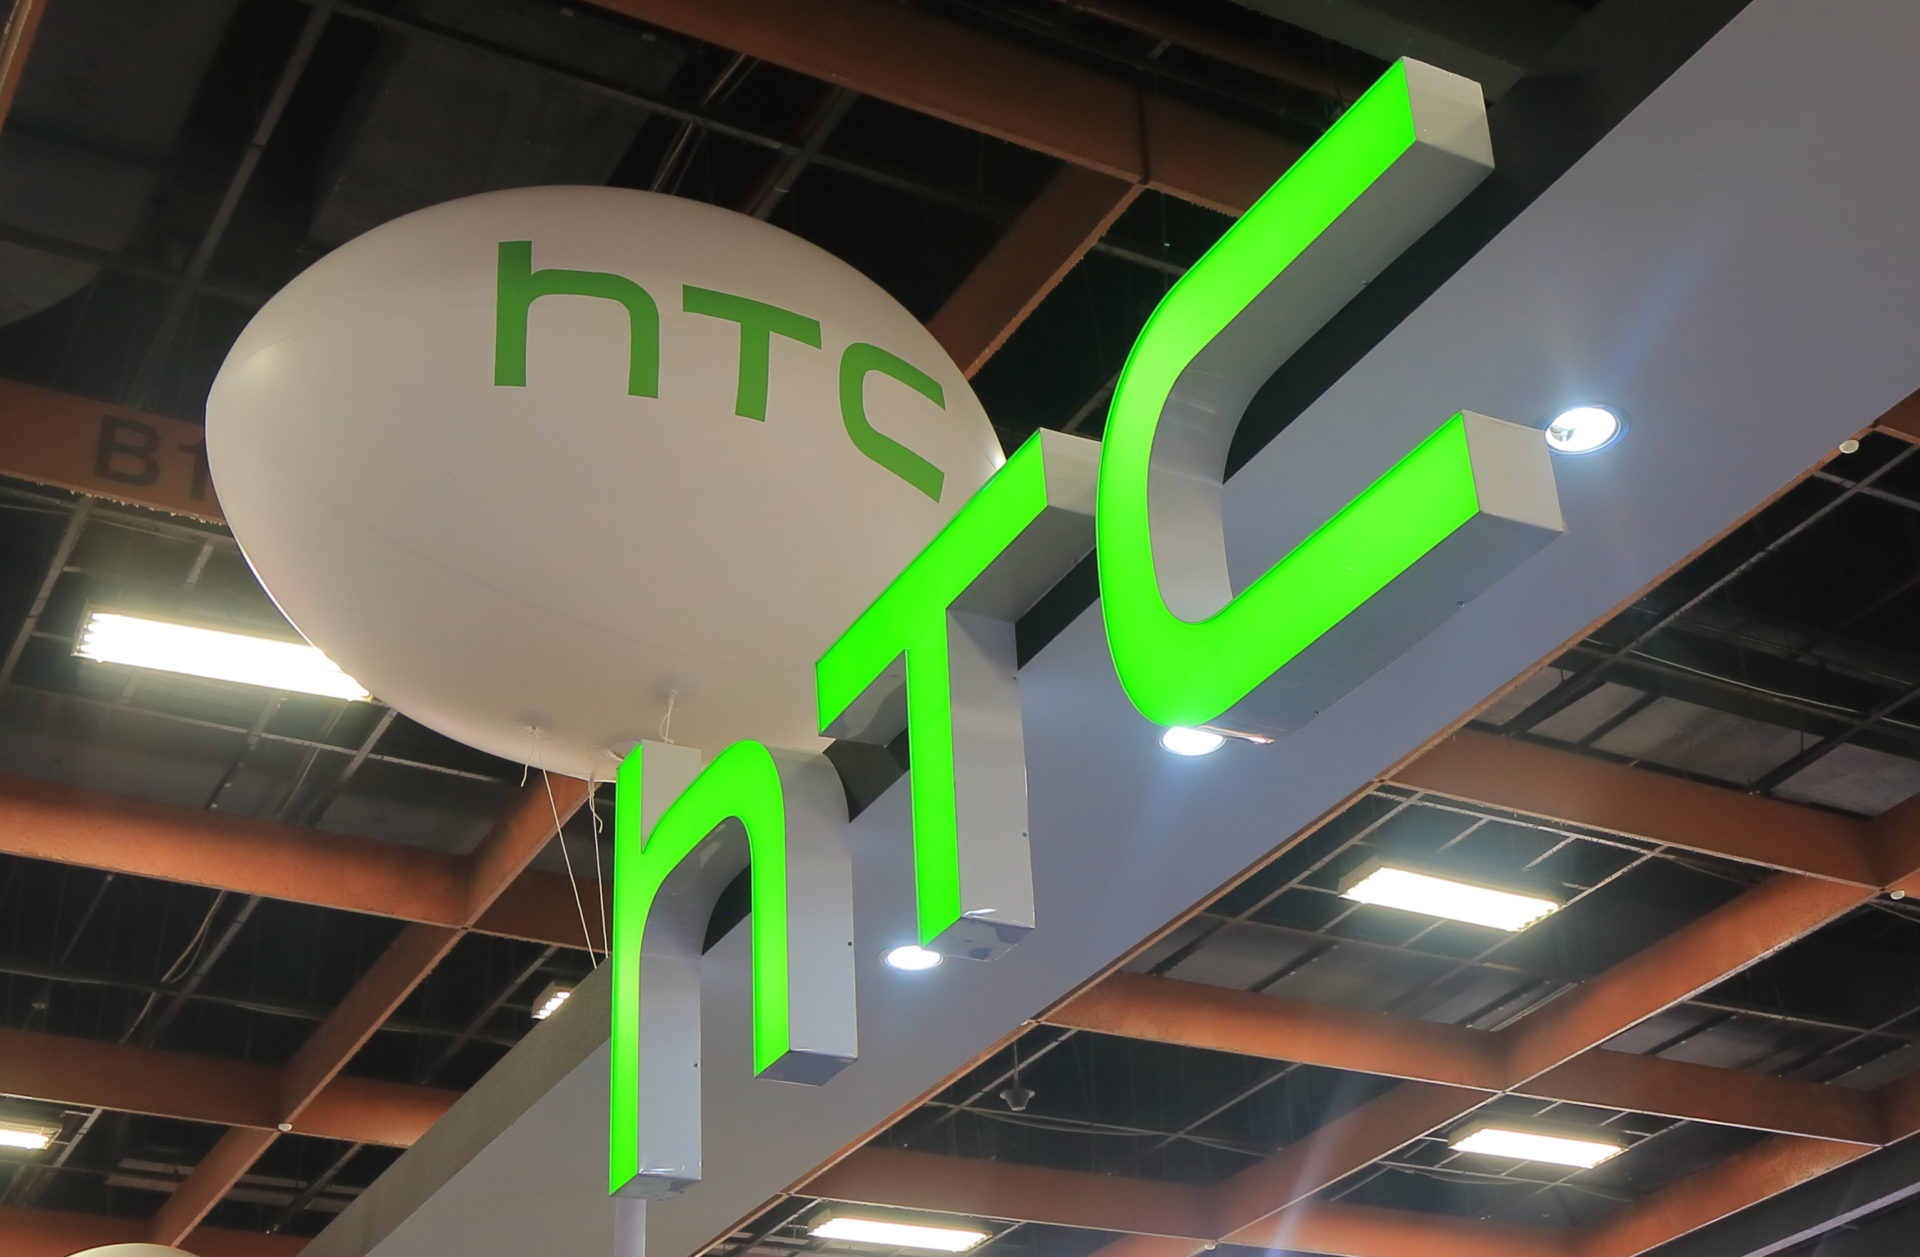 HTC Exodus Phones Preparing to Ship in December With More Questions Than Answers